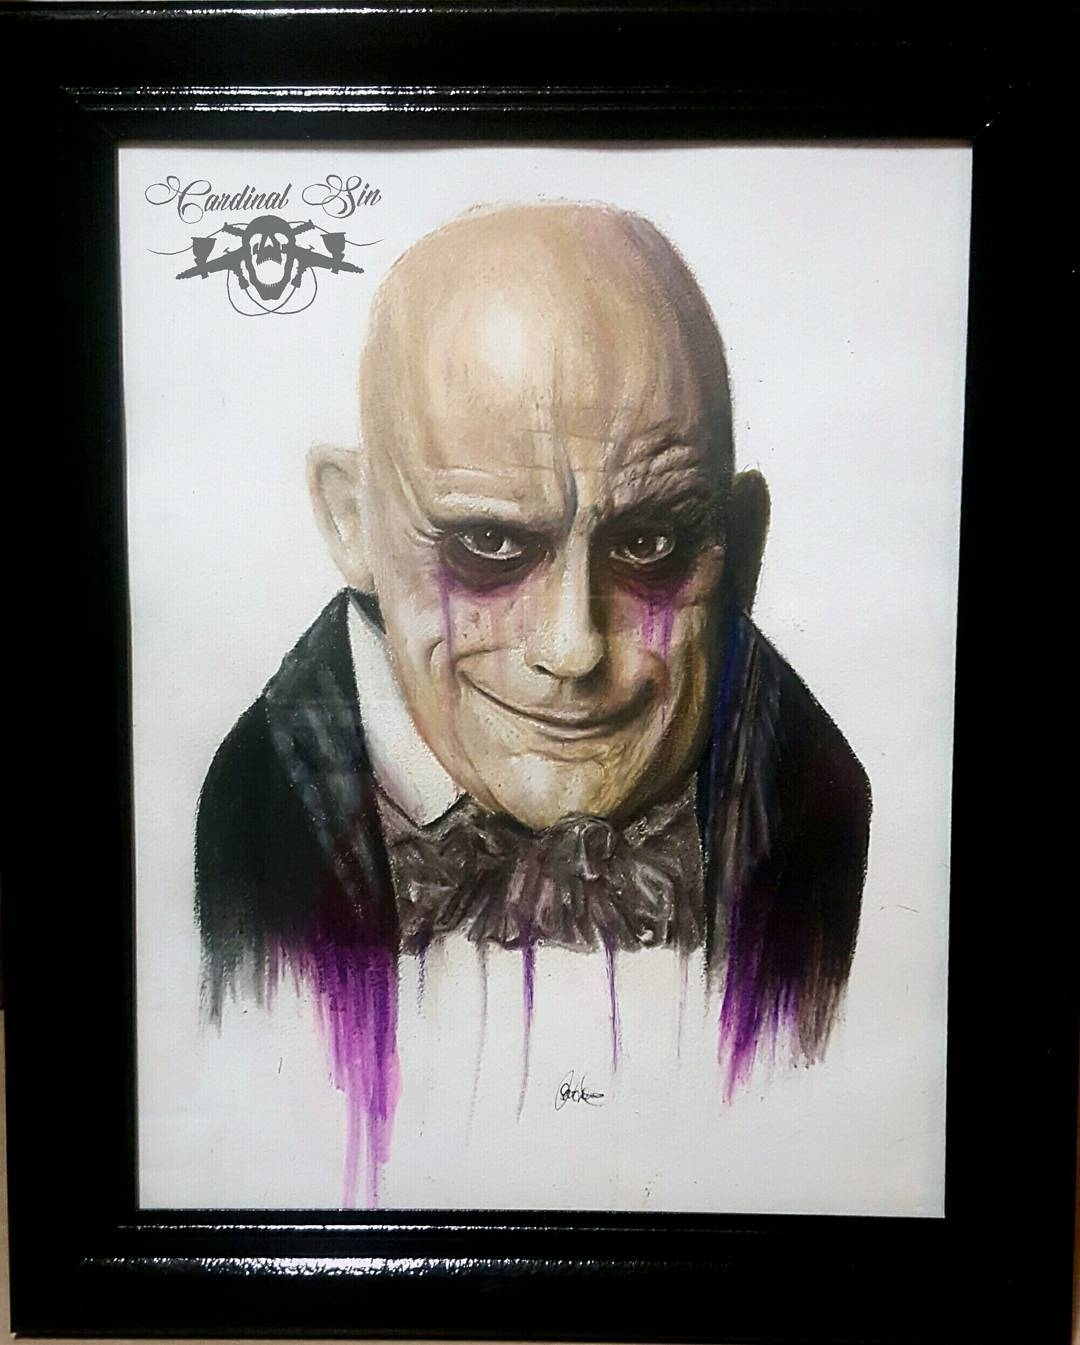 04-Uncle-Fester-Addams-Family-Courtney-Georghiou-Art-Drawn-and-Airbrushed-and-Painted-in-an-Eclectic-Mix-www-designstack-co